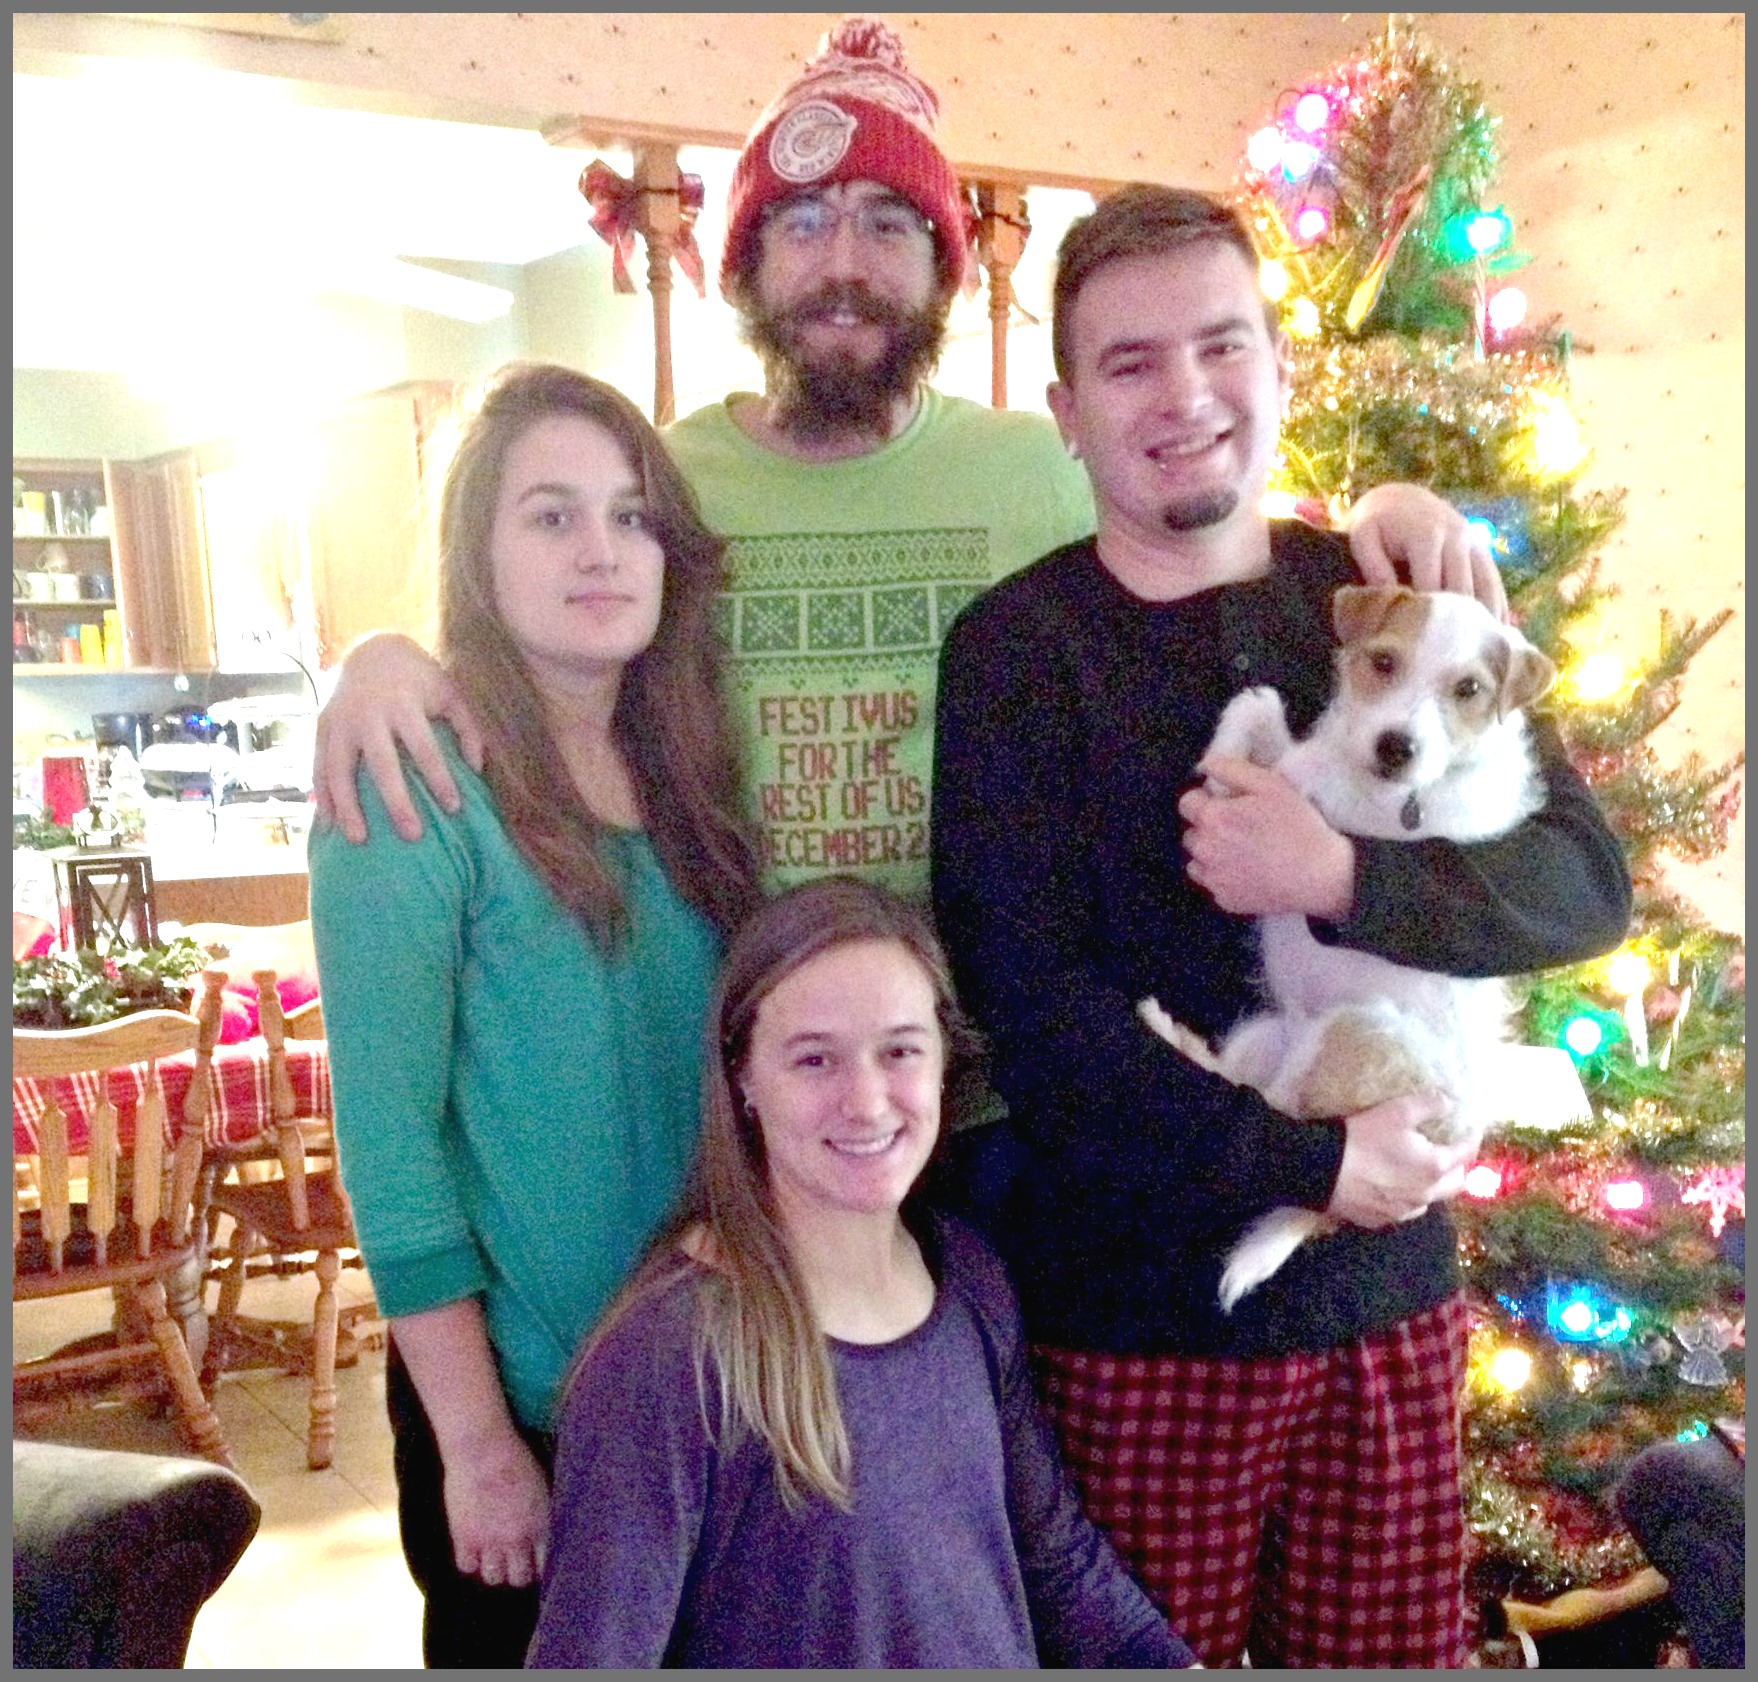 zach in front of tree revised cropped for website.jpg